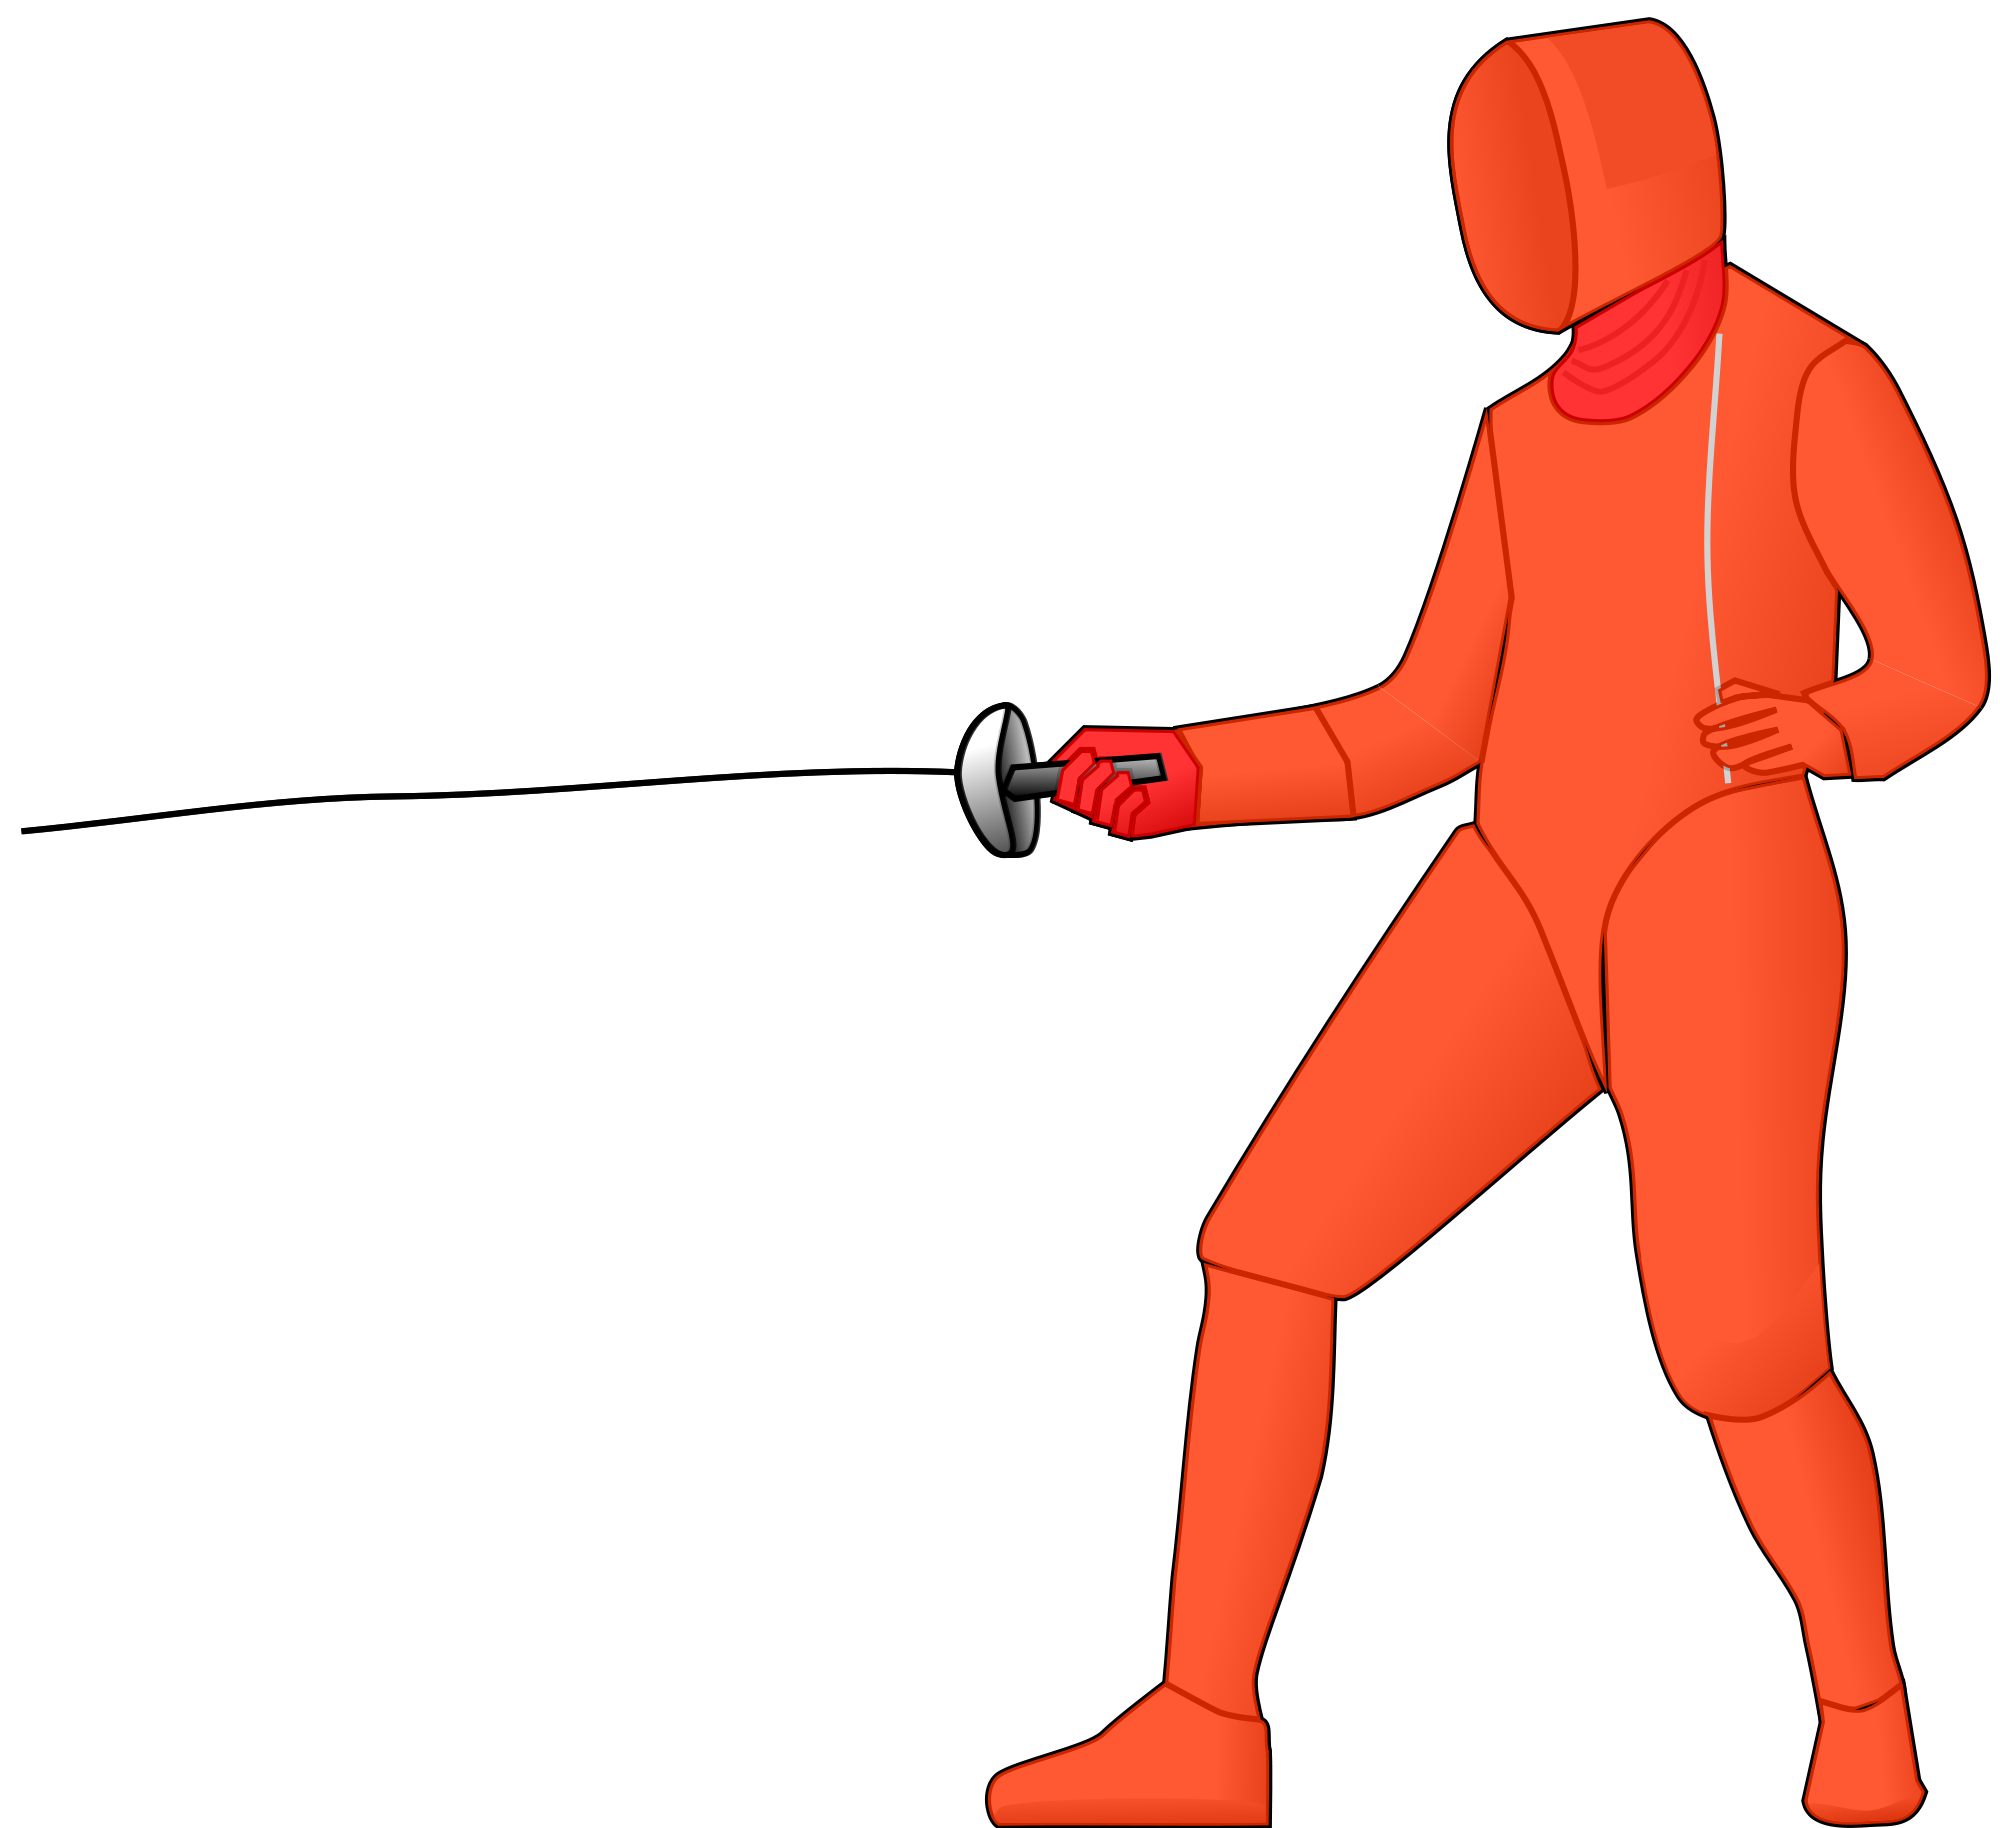 Tsfc about . Fencing clipart person